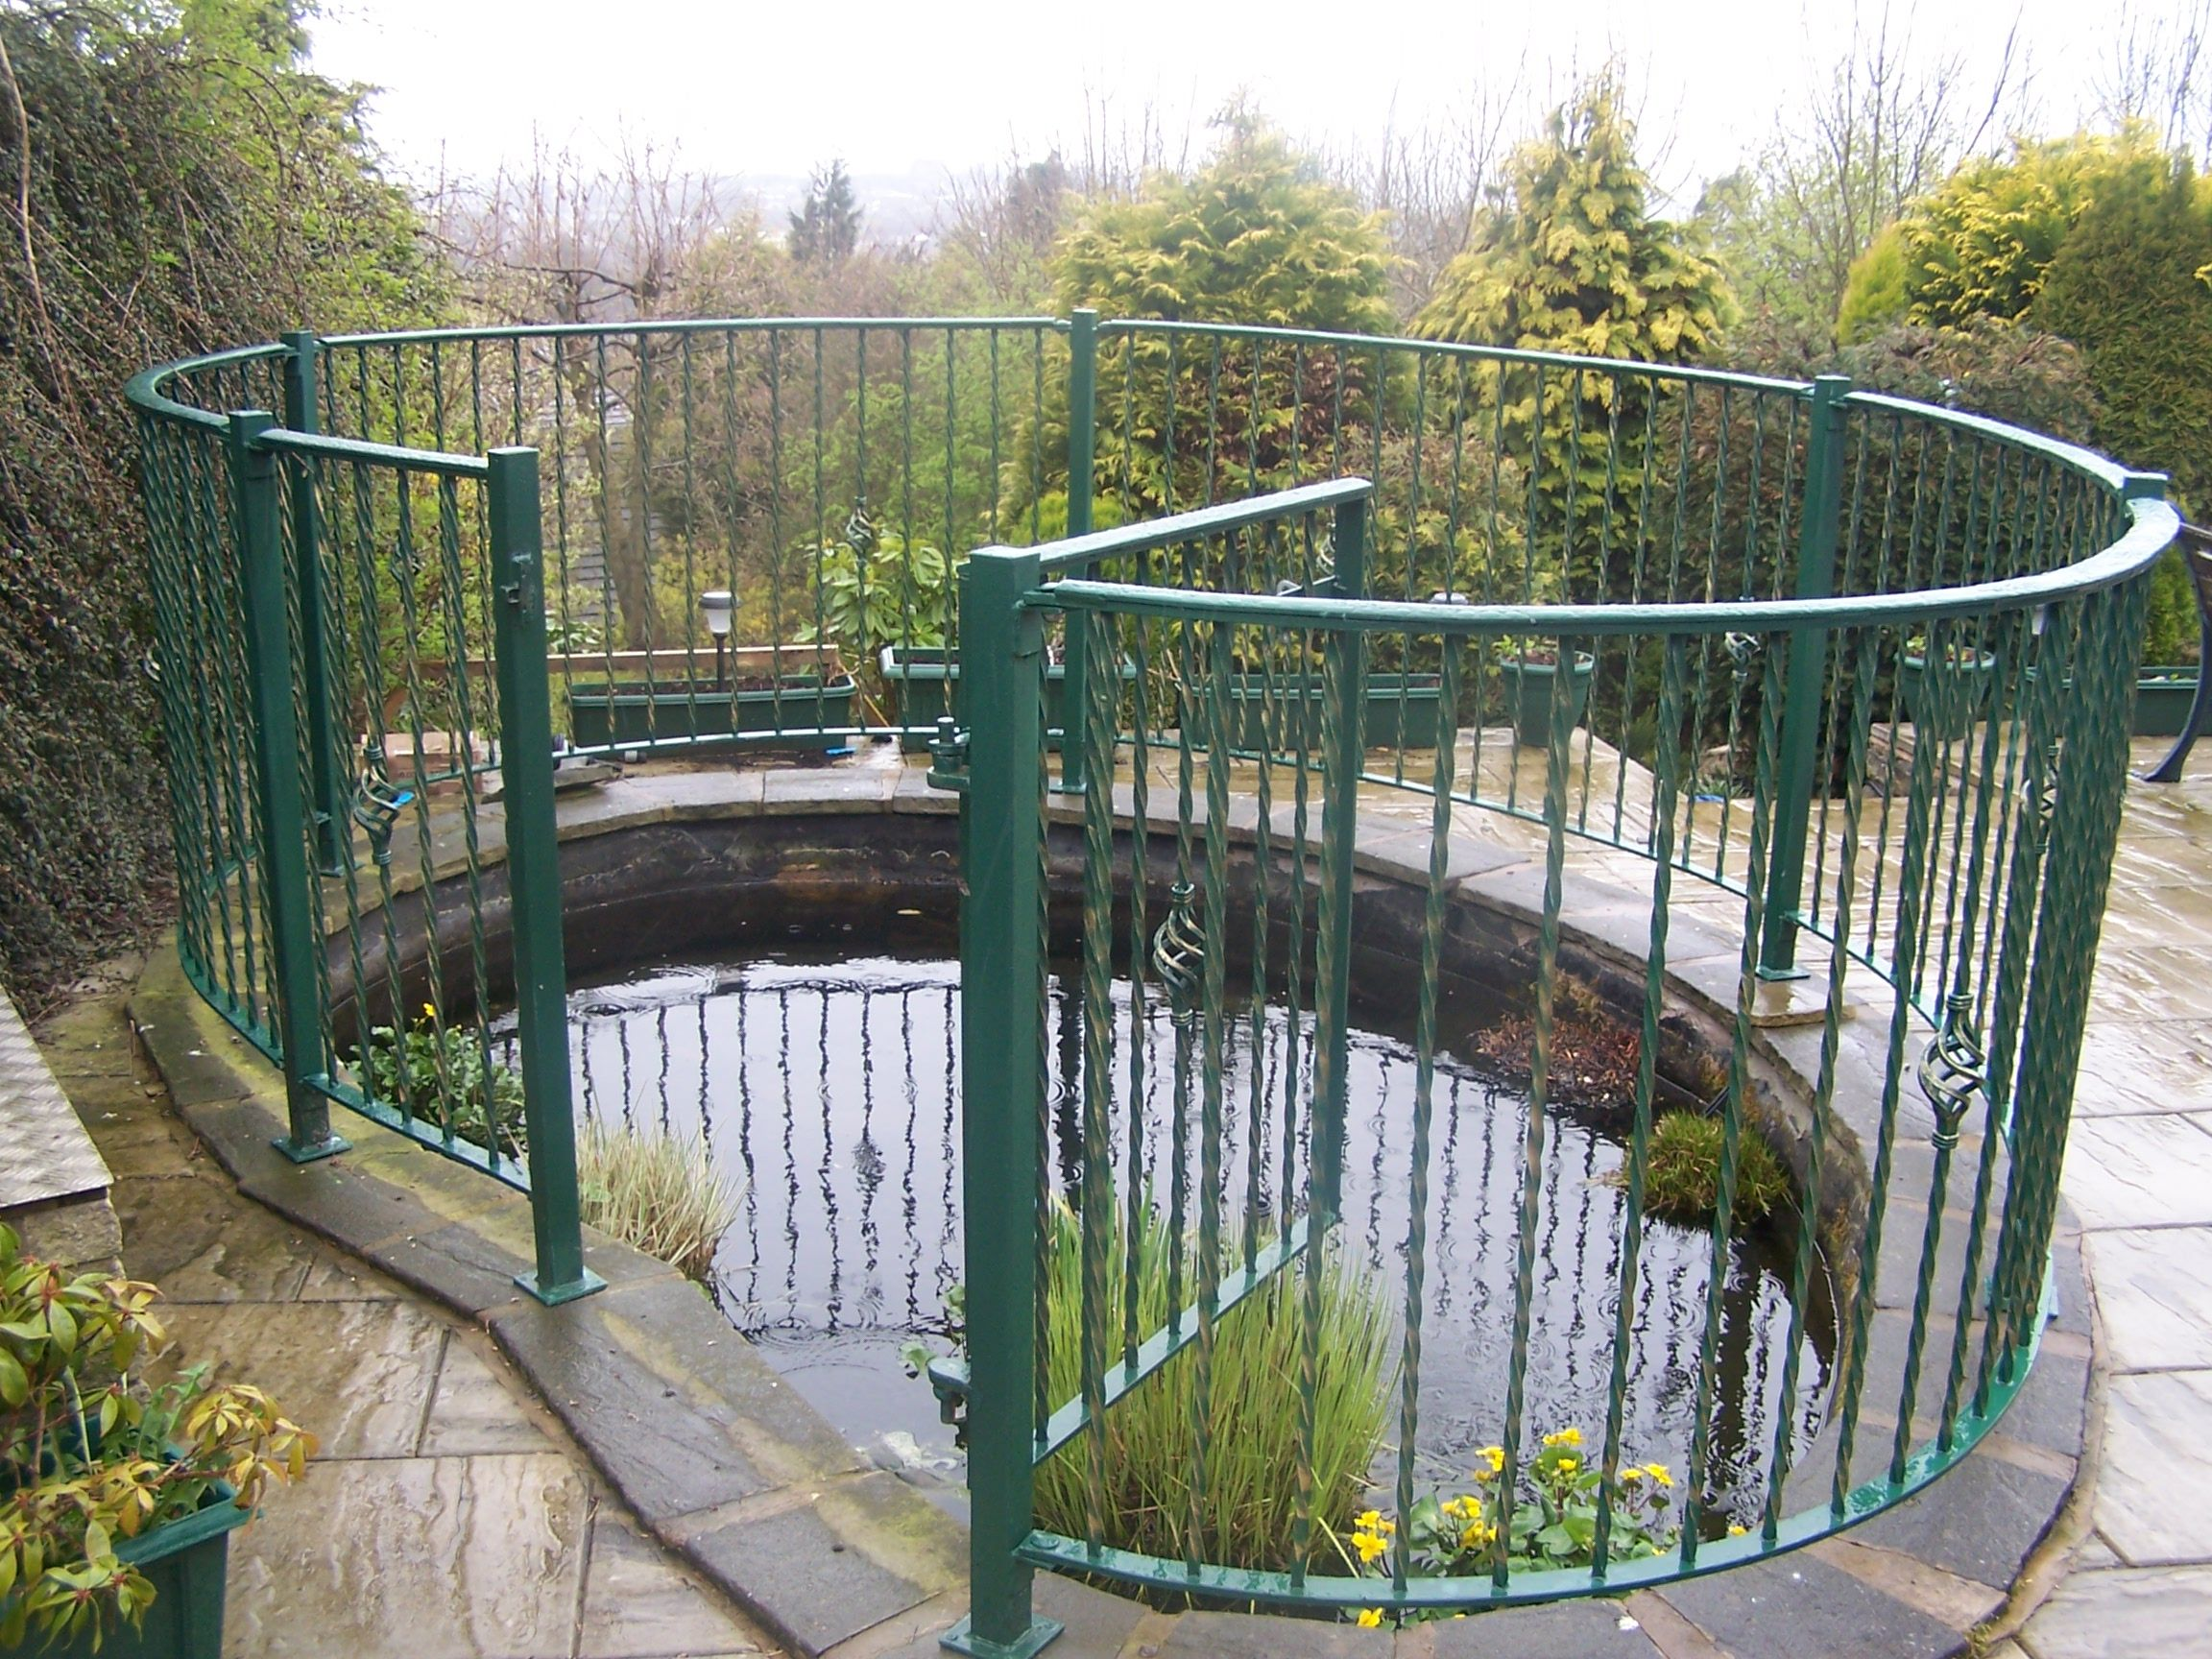 Garden pond railings to ensure safety but still access for